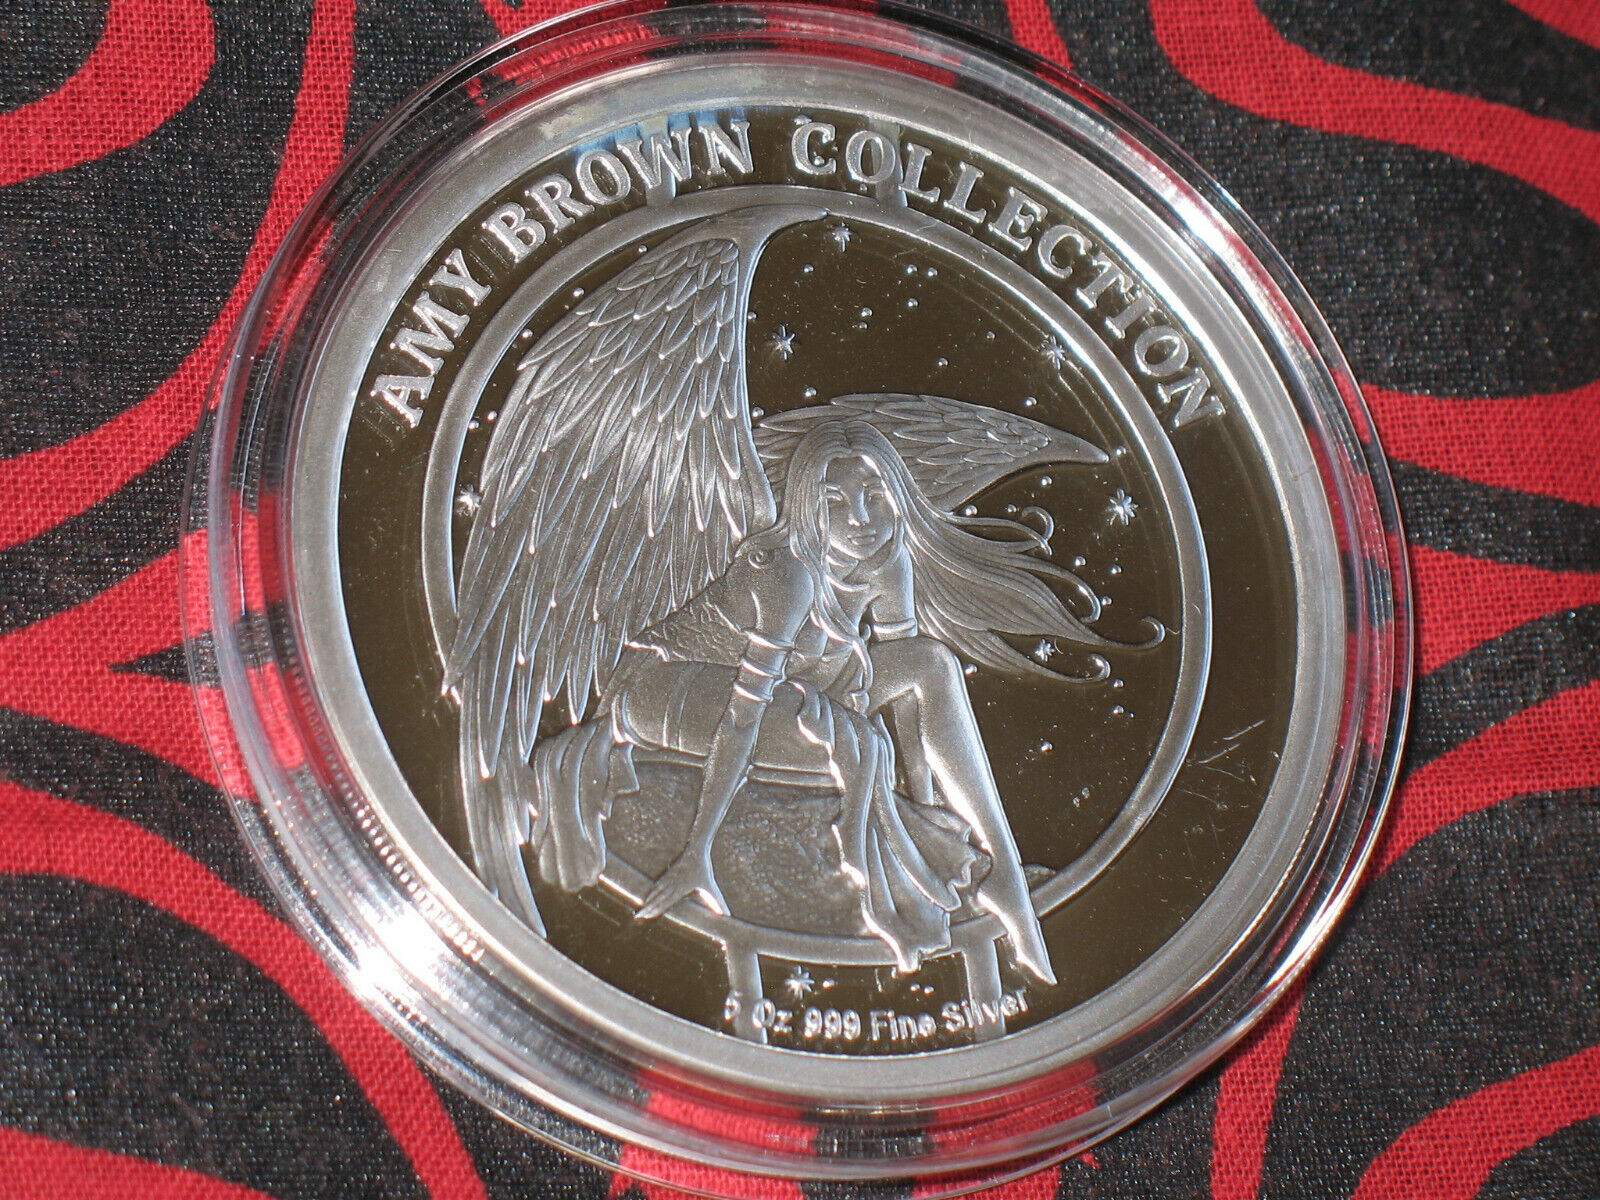 AMY BROWN FAIRY COLLECTION. 5 OZ PROOF Silver Coin. WALLFLOWER COLORIZED.  - $275.00